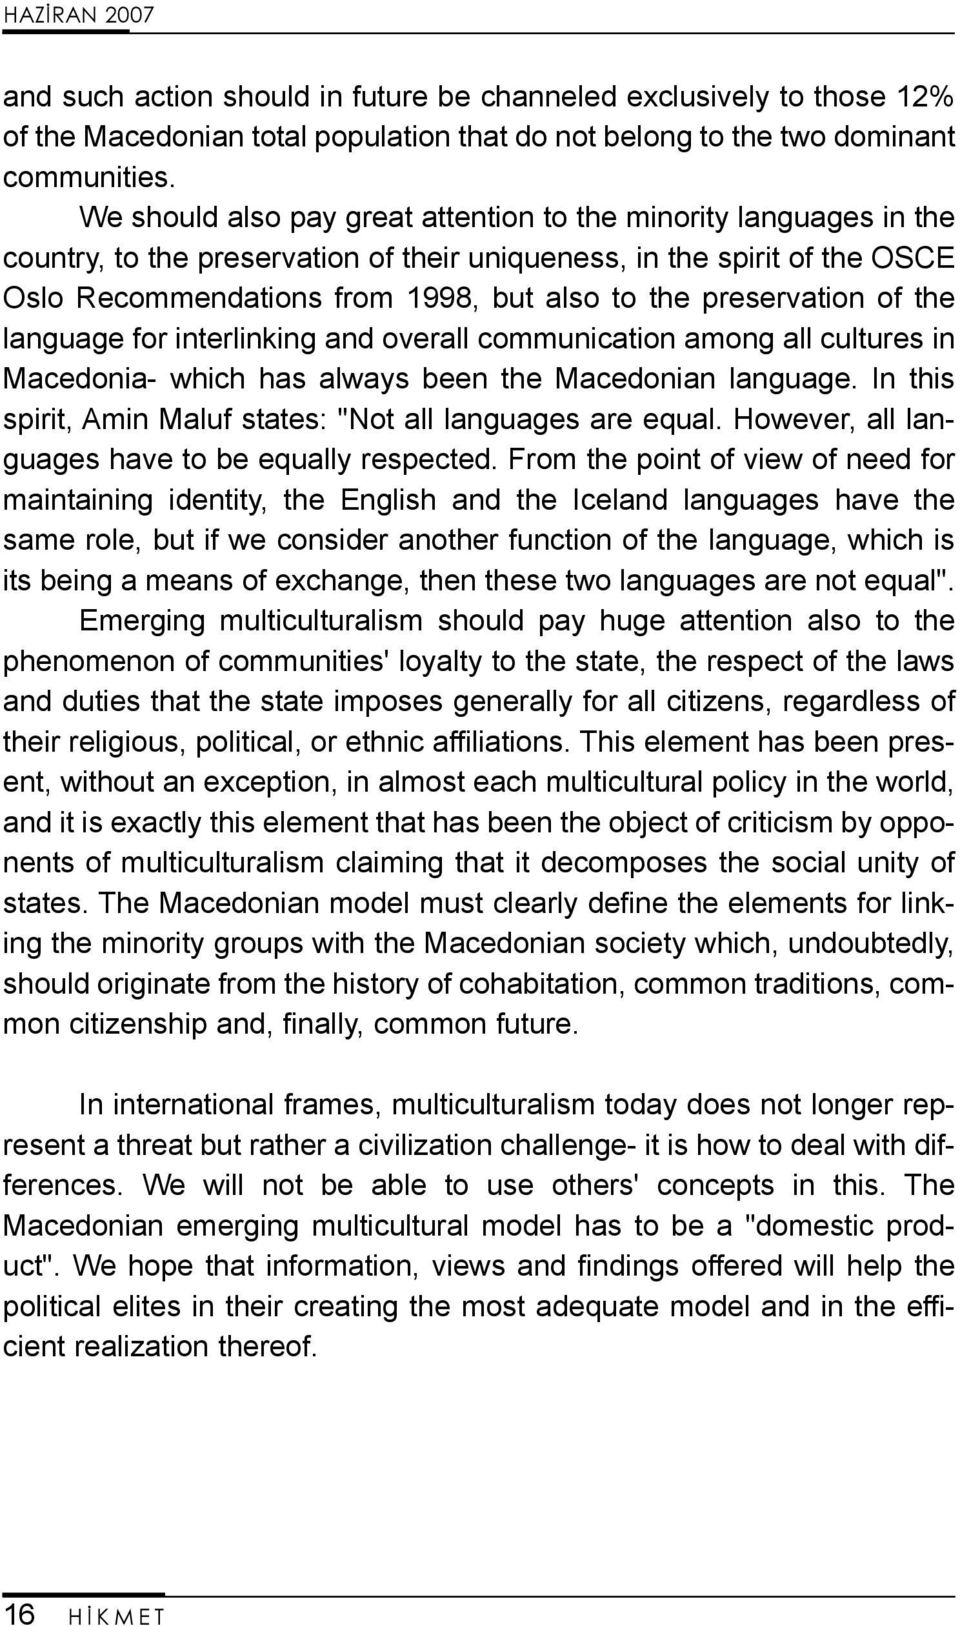 preservation of the language for interlinking and overall communication among all cultures in Macedonia- which has always been the Macedonian language.